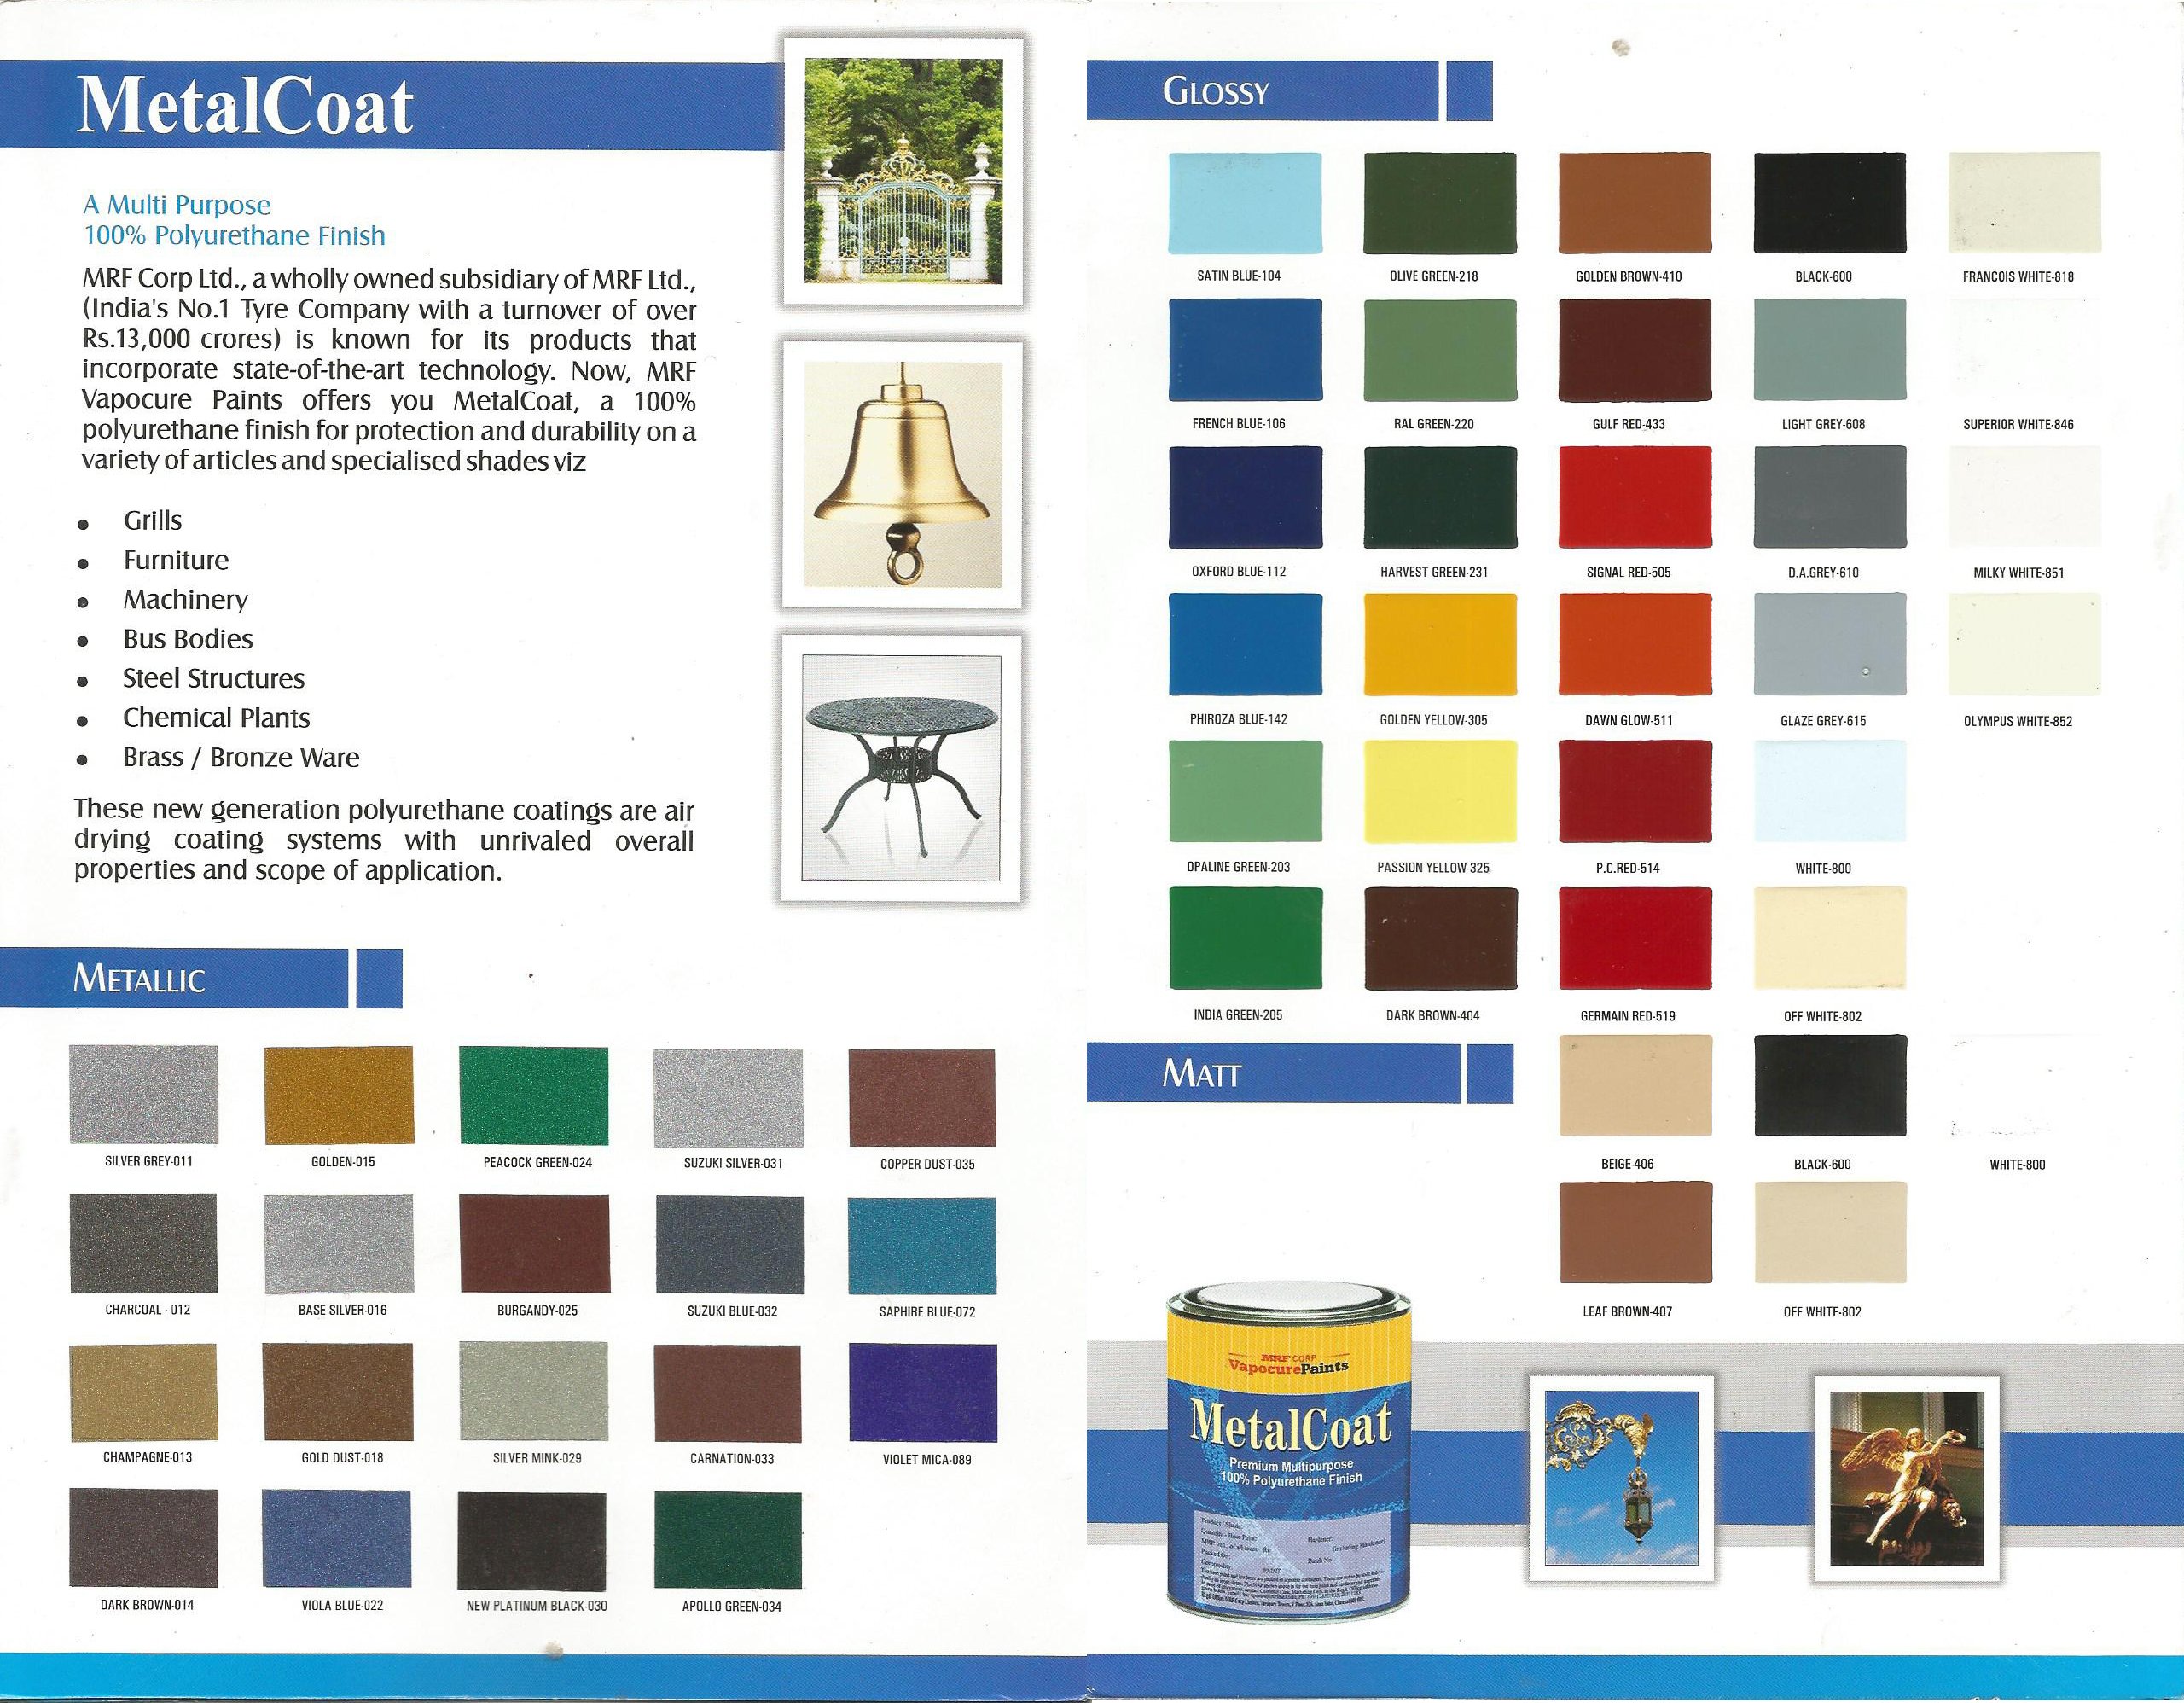 MRF Metal Coat Shade Card